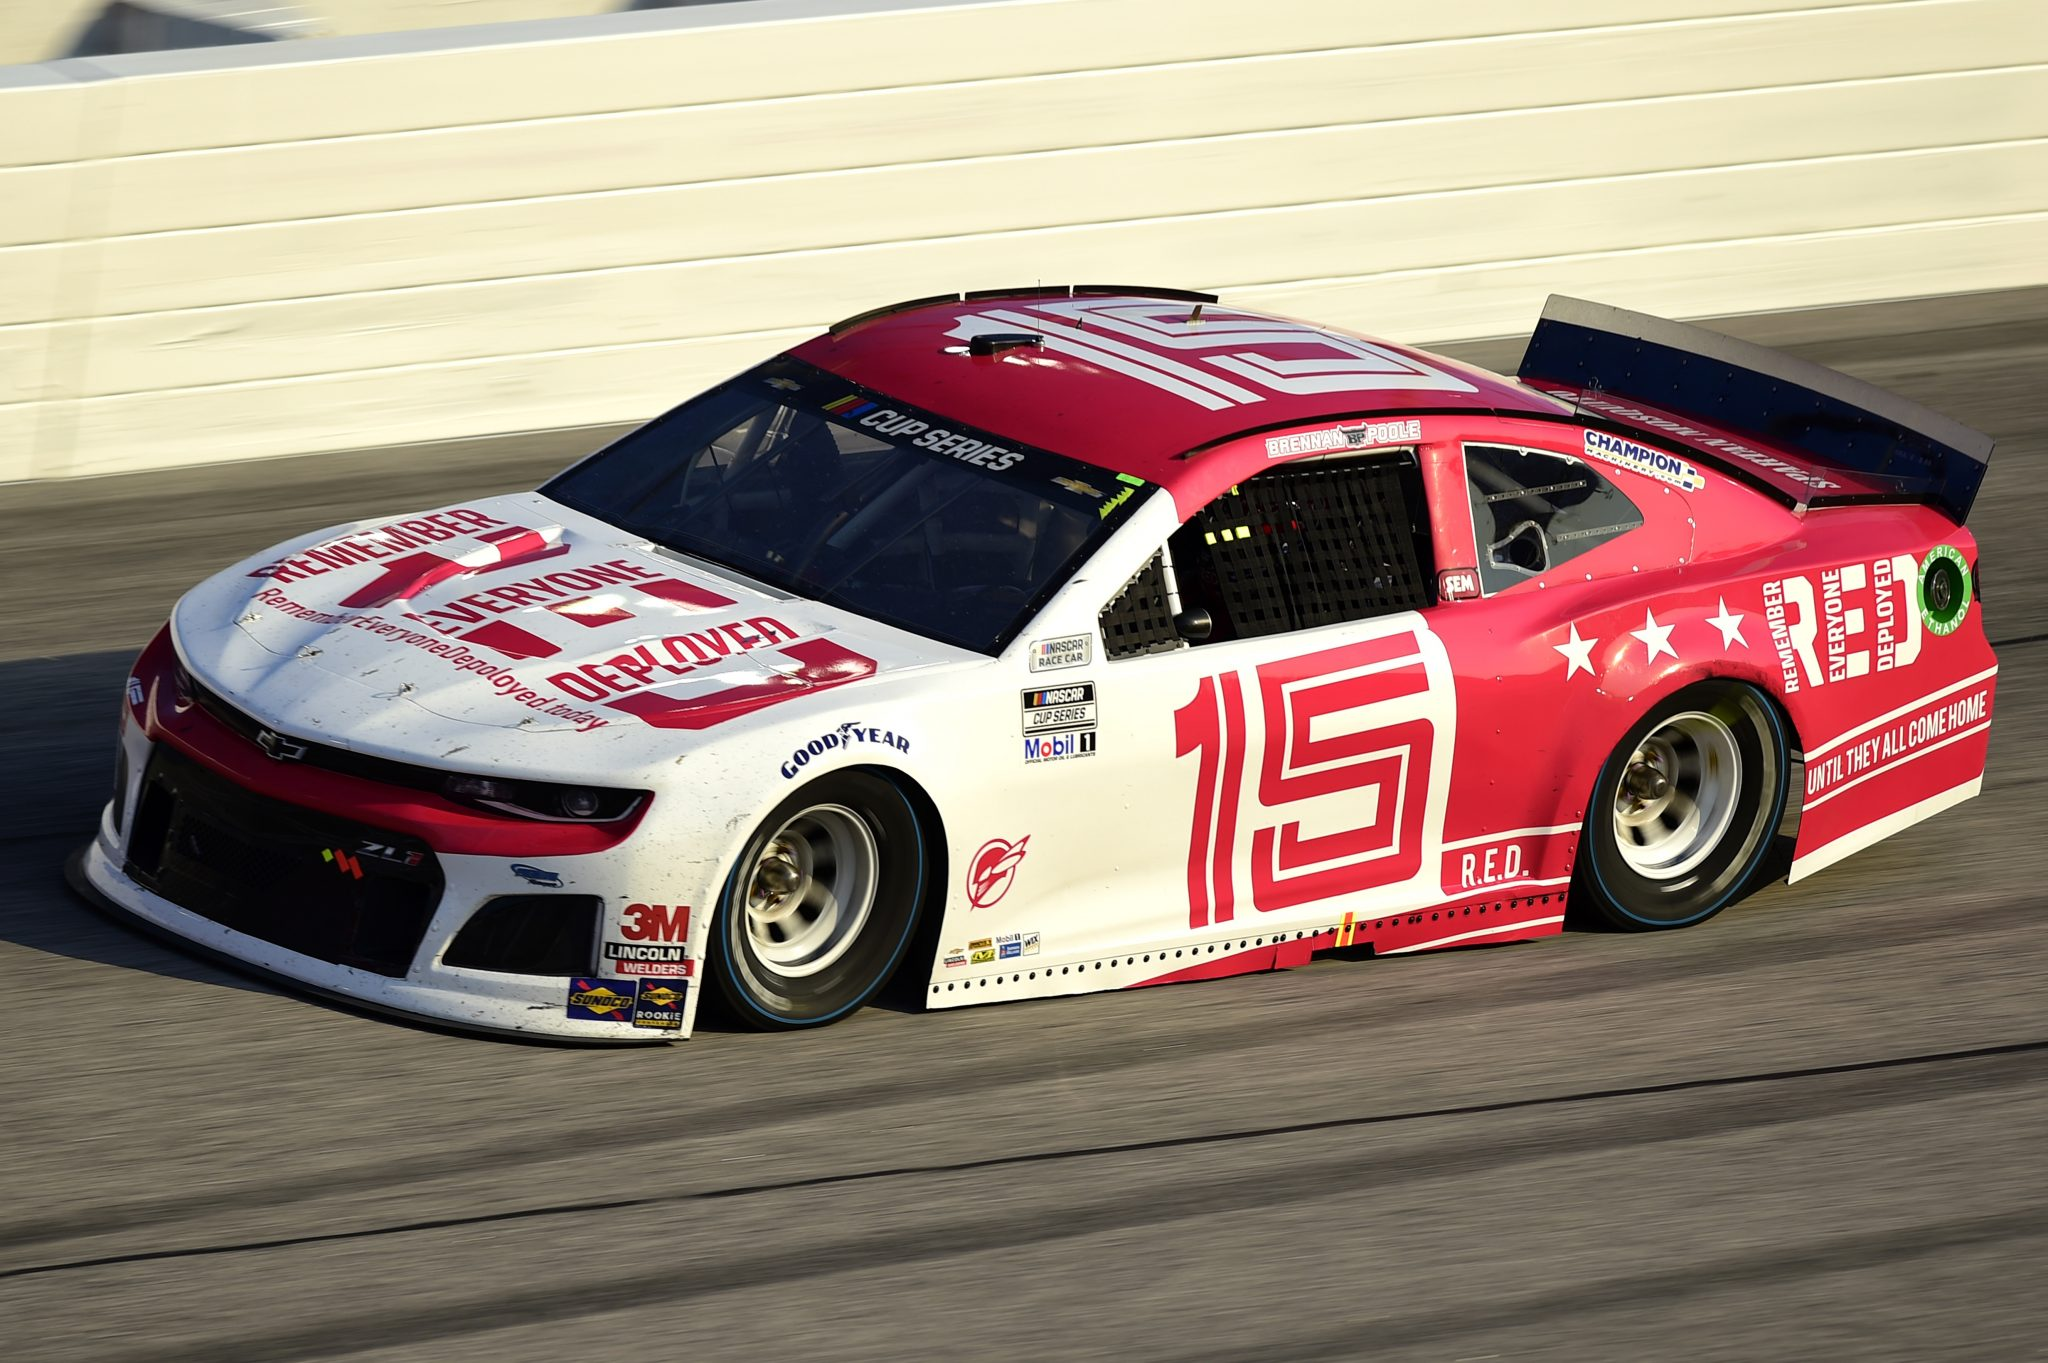 DARLINGTON, SOUTH CAROLINA - SEPTEMBER 06: Brennan Poole, driver of the #15 Chevrolet, drives during the NASCAR Cup Series Cook Out Southern 500 at Darlington Raceway on September 06, 2020 in Darlington, South Carolina. (Photo by Jared C. Tilton/Getty Images) | Getty Images